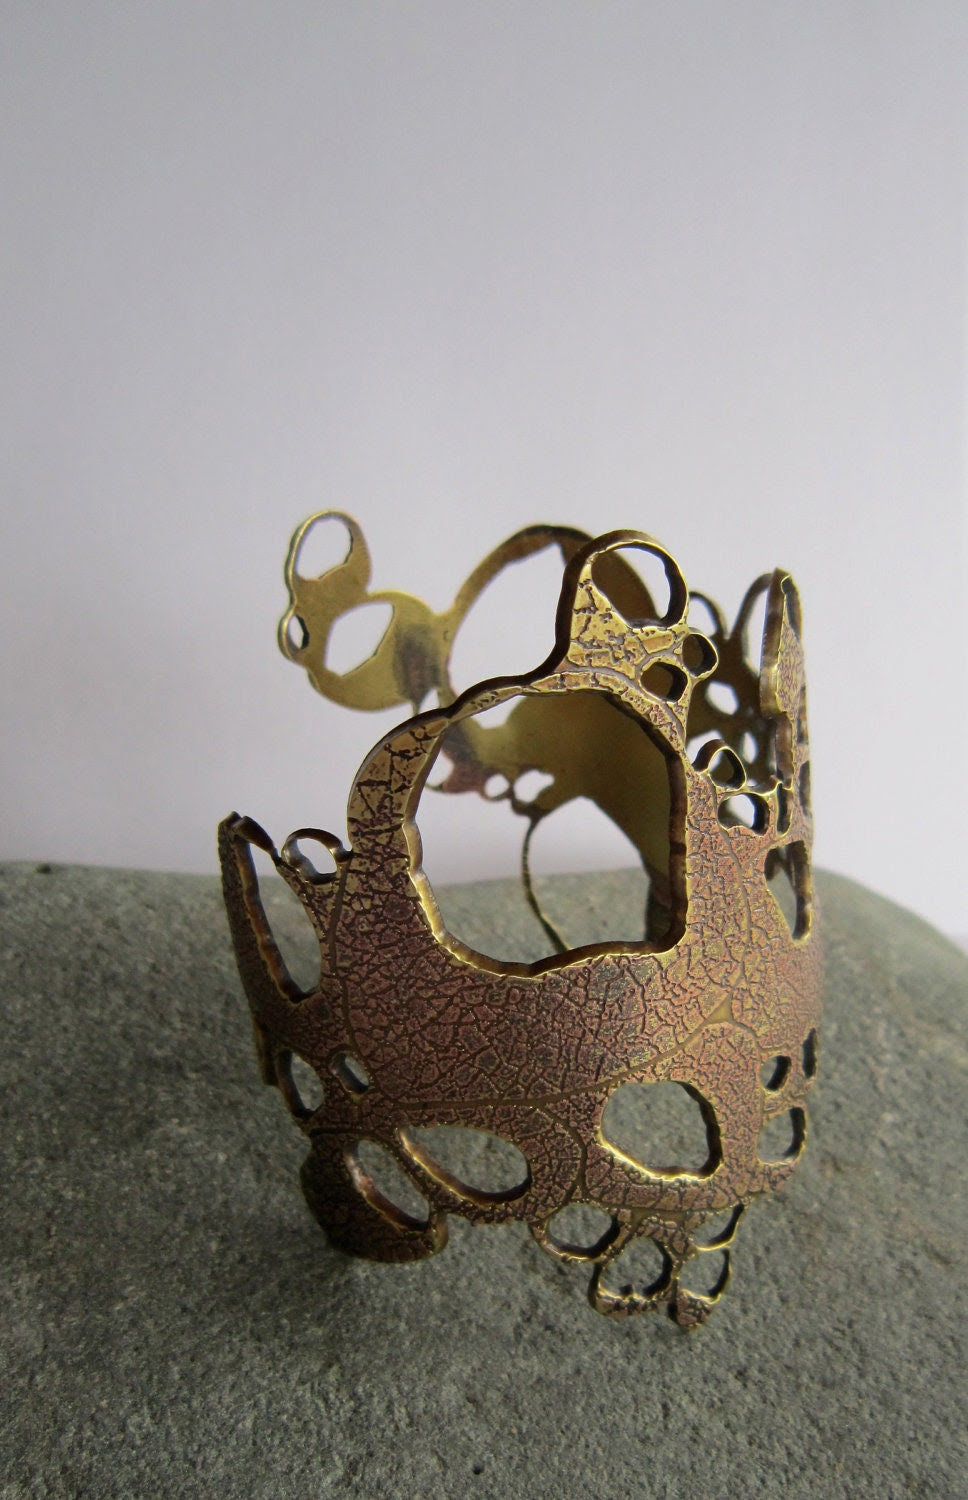 Etched Solid Brass Barnacle Cuff Wearable Art, Handcrafted Jewelry - KarenBlackerby